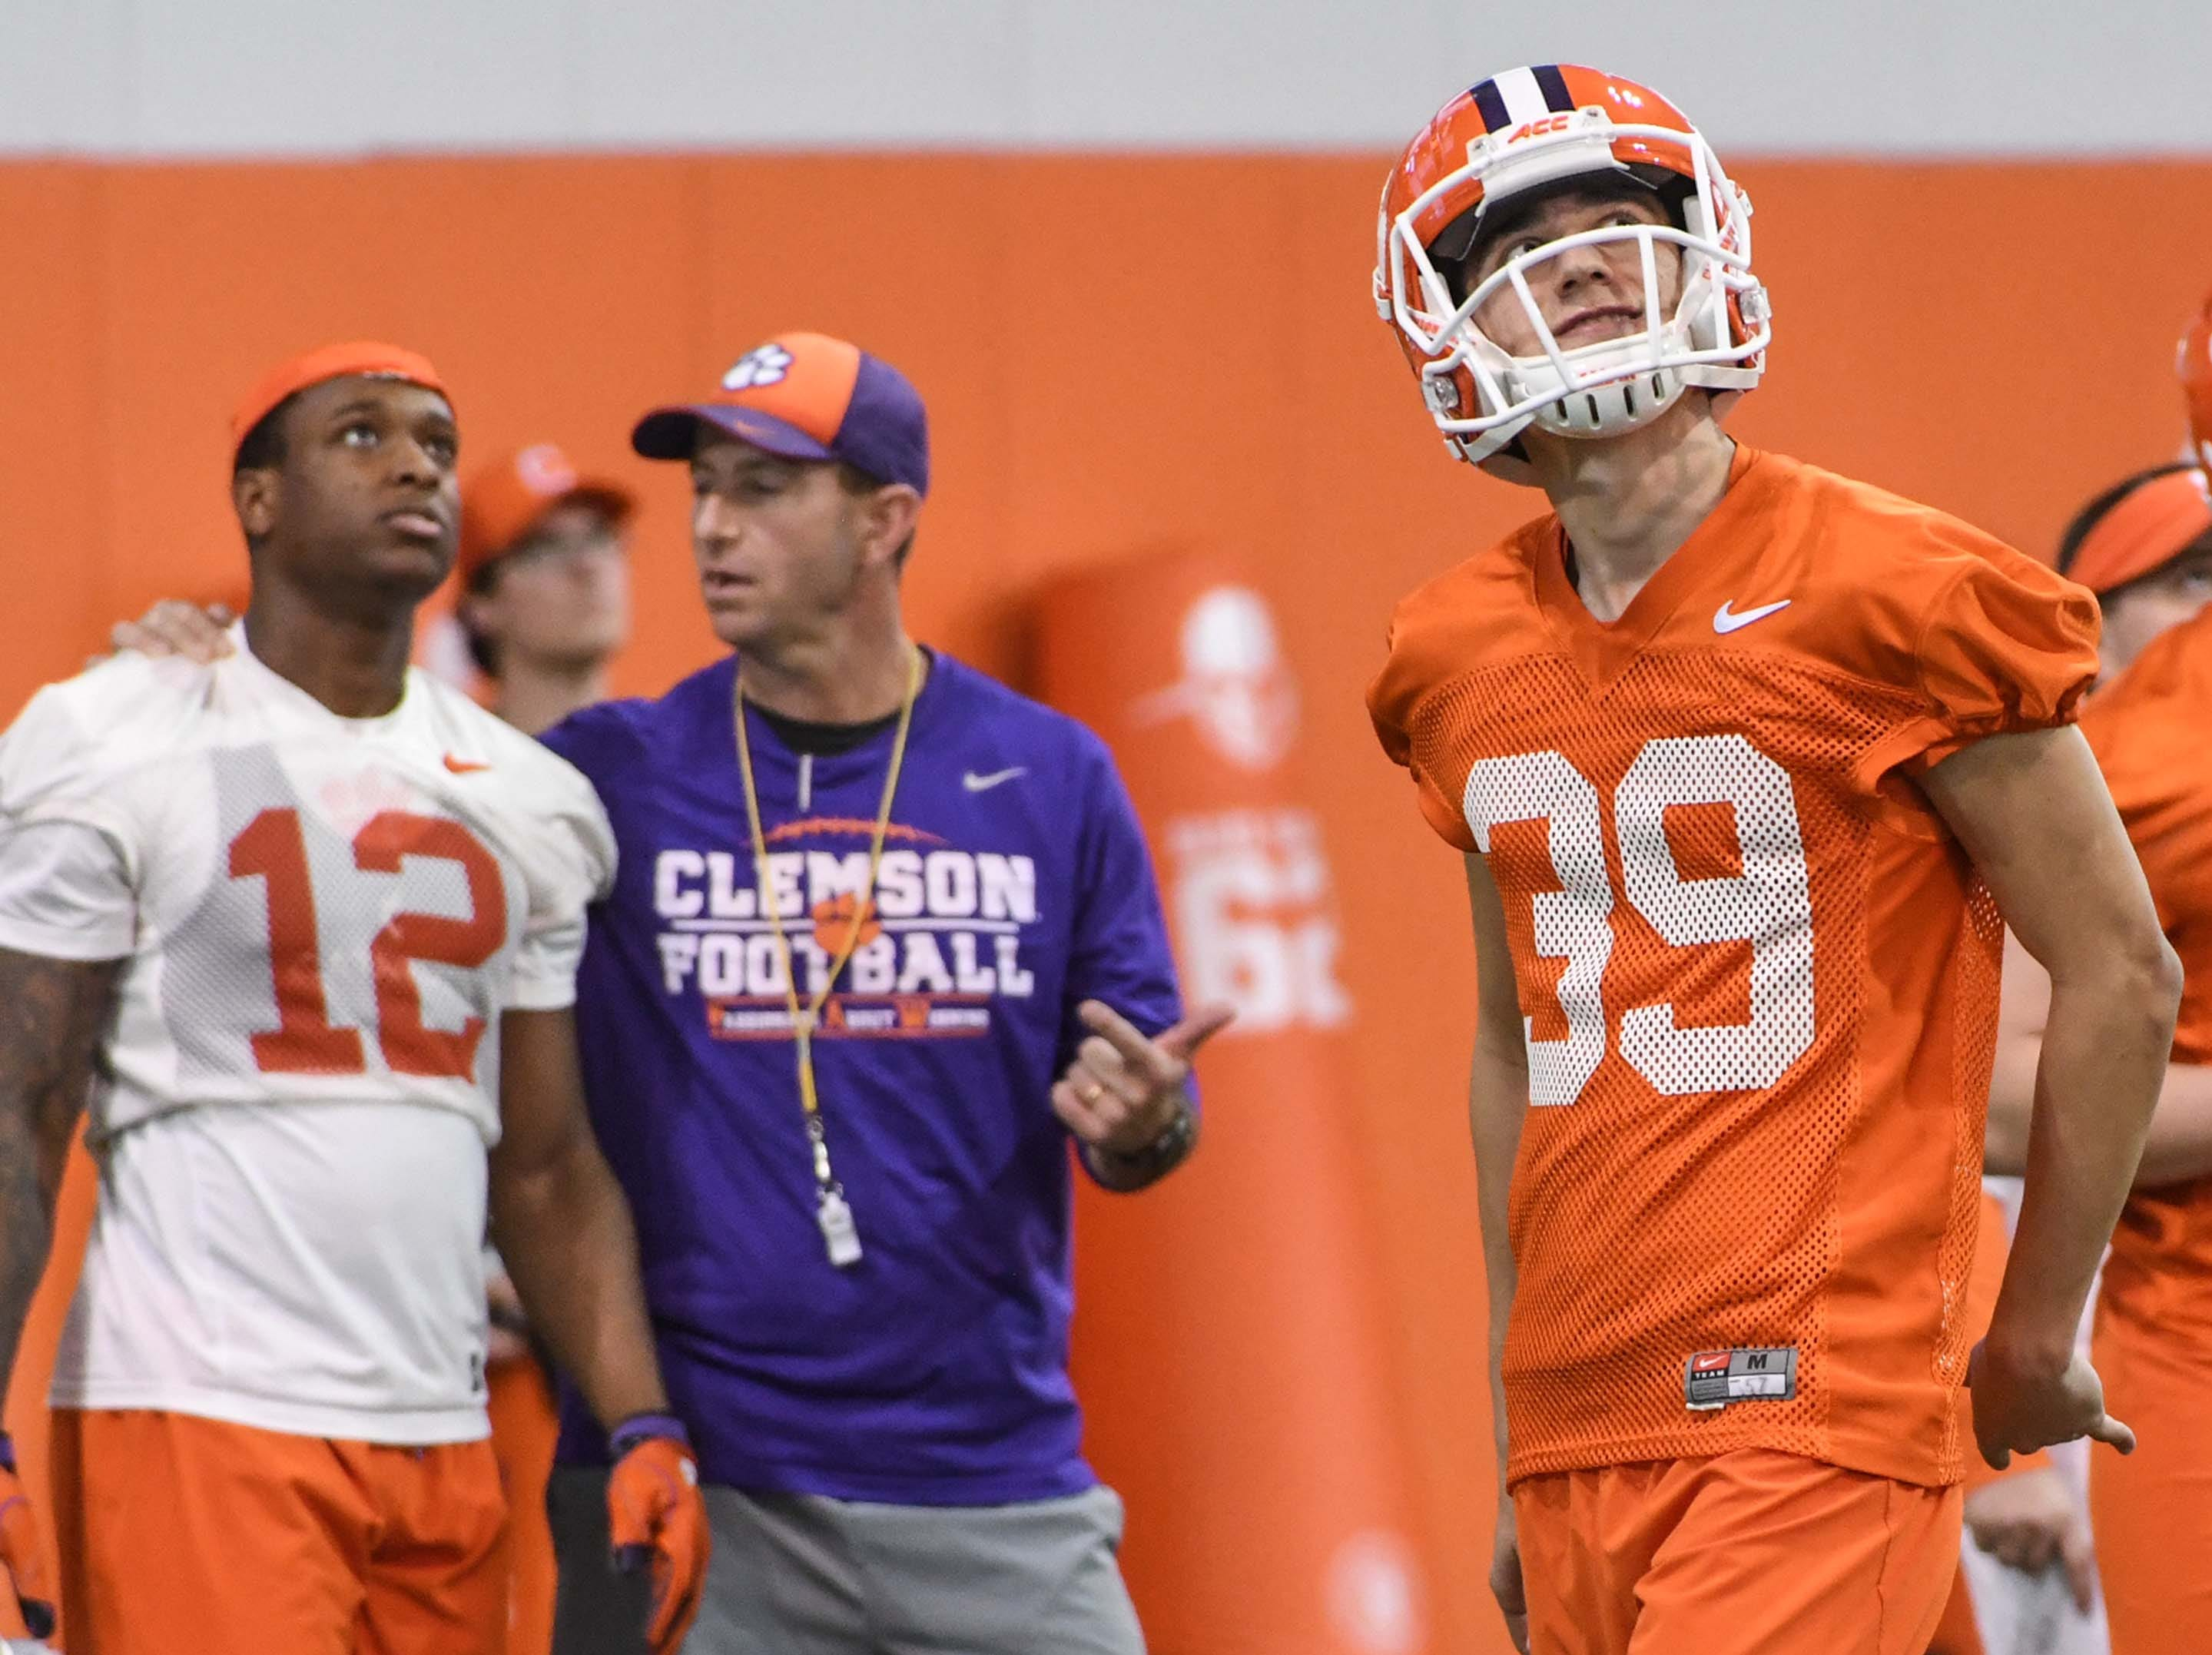 Clemson punter Aidan Swanson(39) watches his punt hit the roof of the indoor facility near defensive back K'Von Wallace (12) and head coach Dabo Swinney during the first practice at the Clemson Indoor Practice Facility in Clemson Wednesday, February 27, 2019.